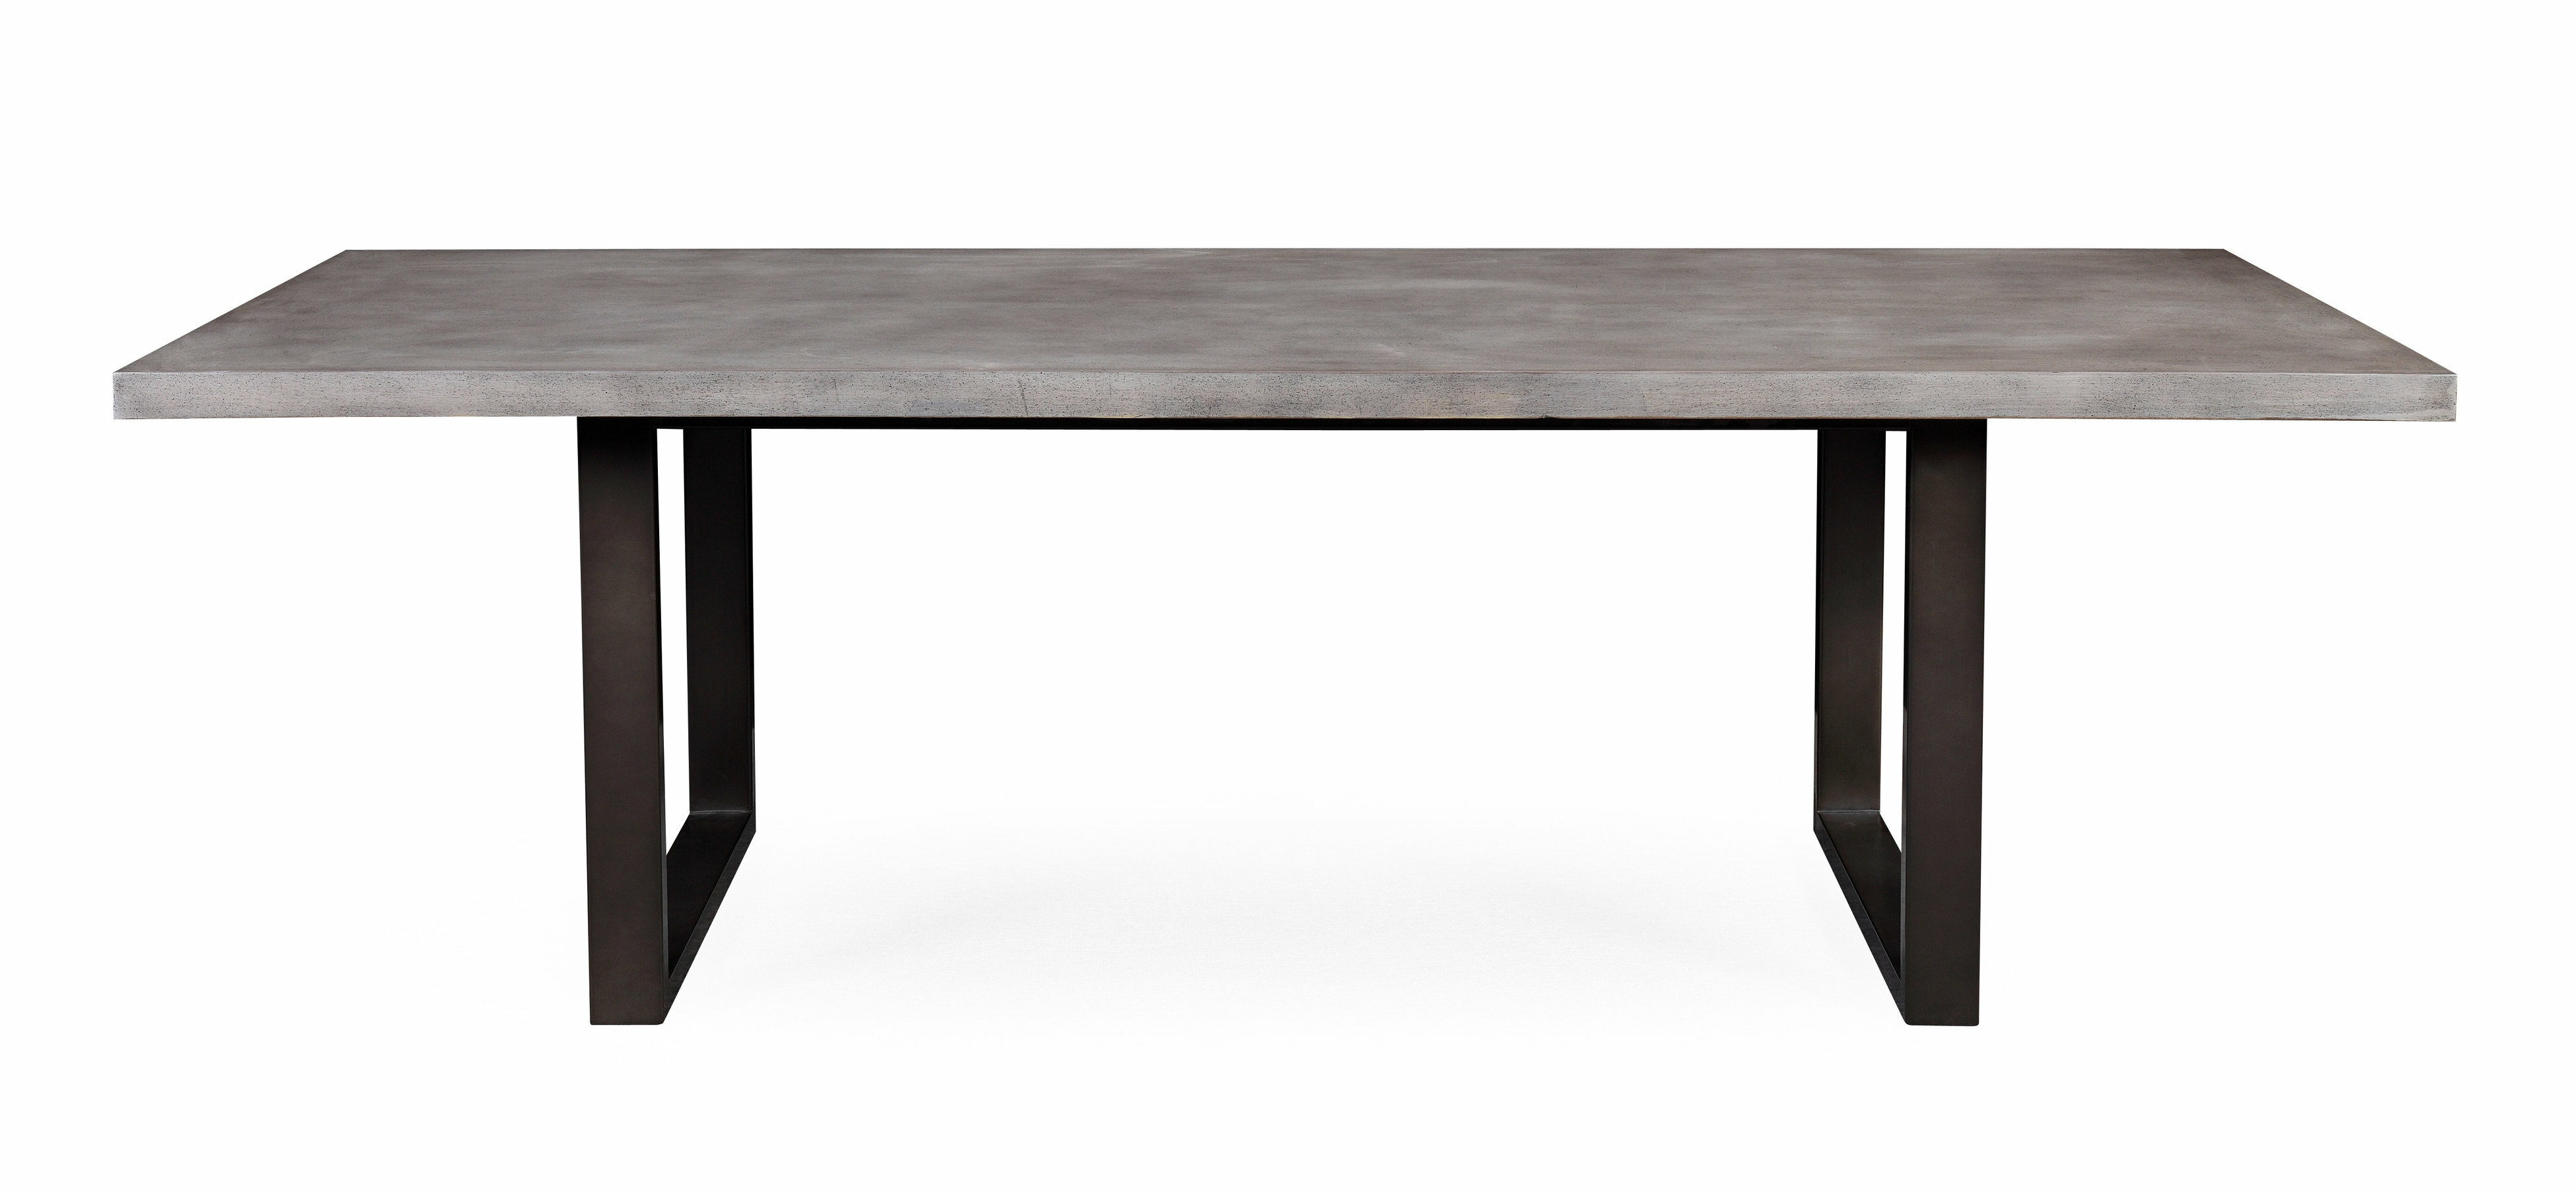 Carnarvon concrete dining table reviews allmodern